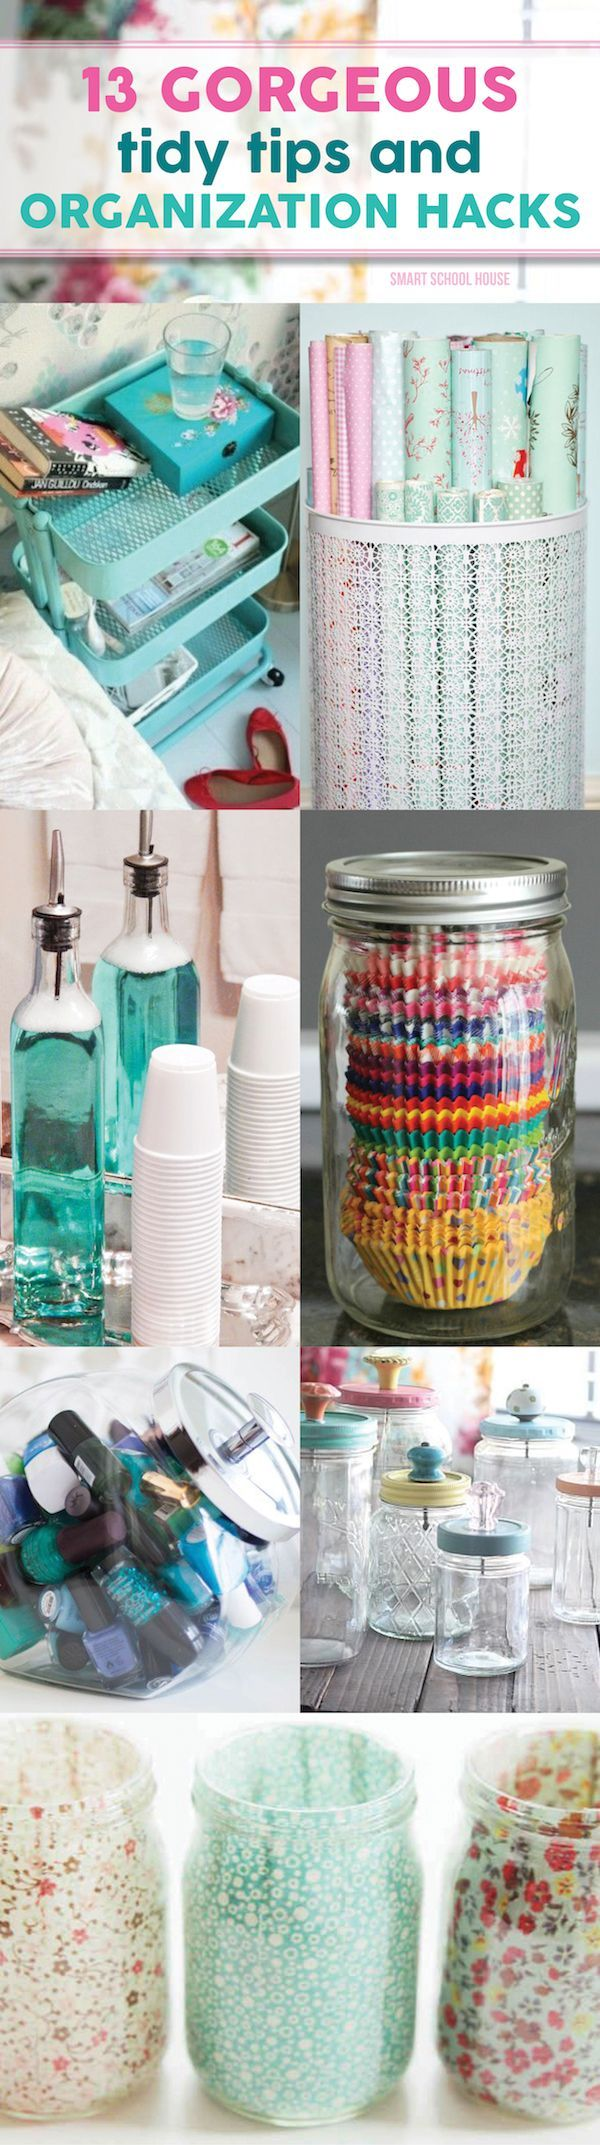 jar    polish style can     t perfectly  my coats Organization fit    ski think didn     t Tips believe I Gorgeous nail but that women I I DIY and that Tidy of for love Hacks